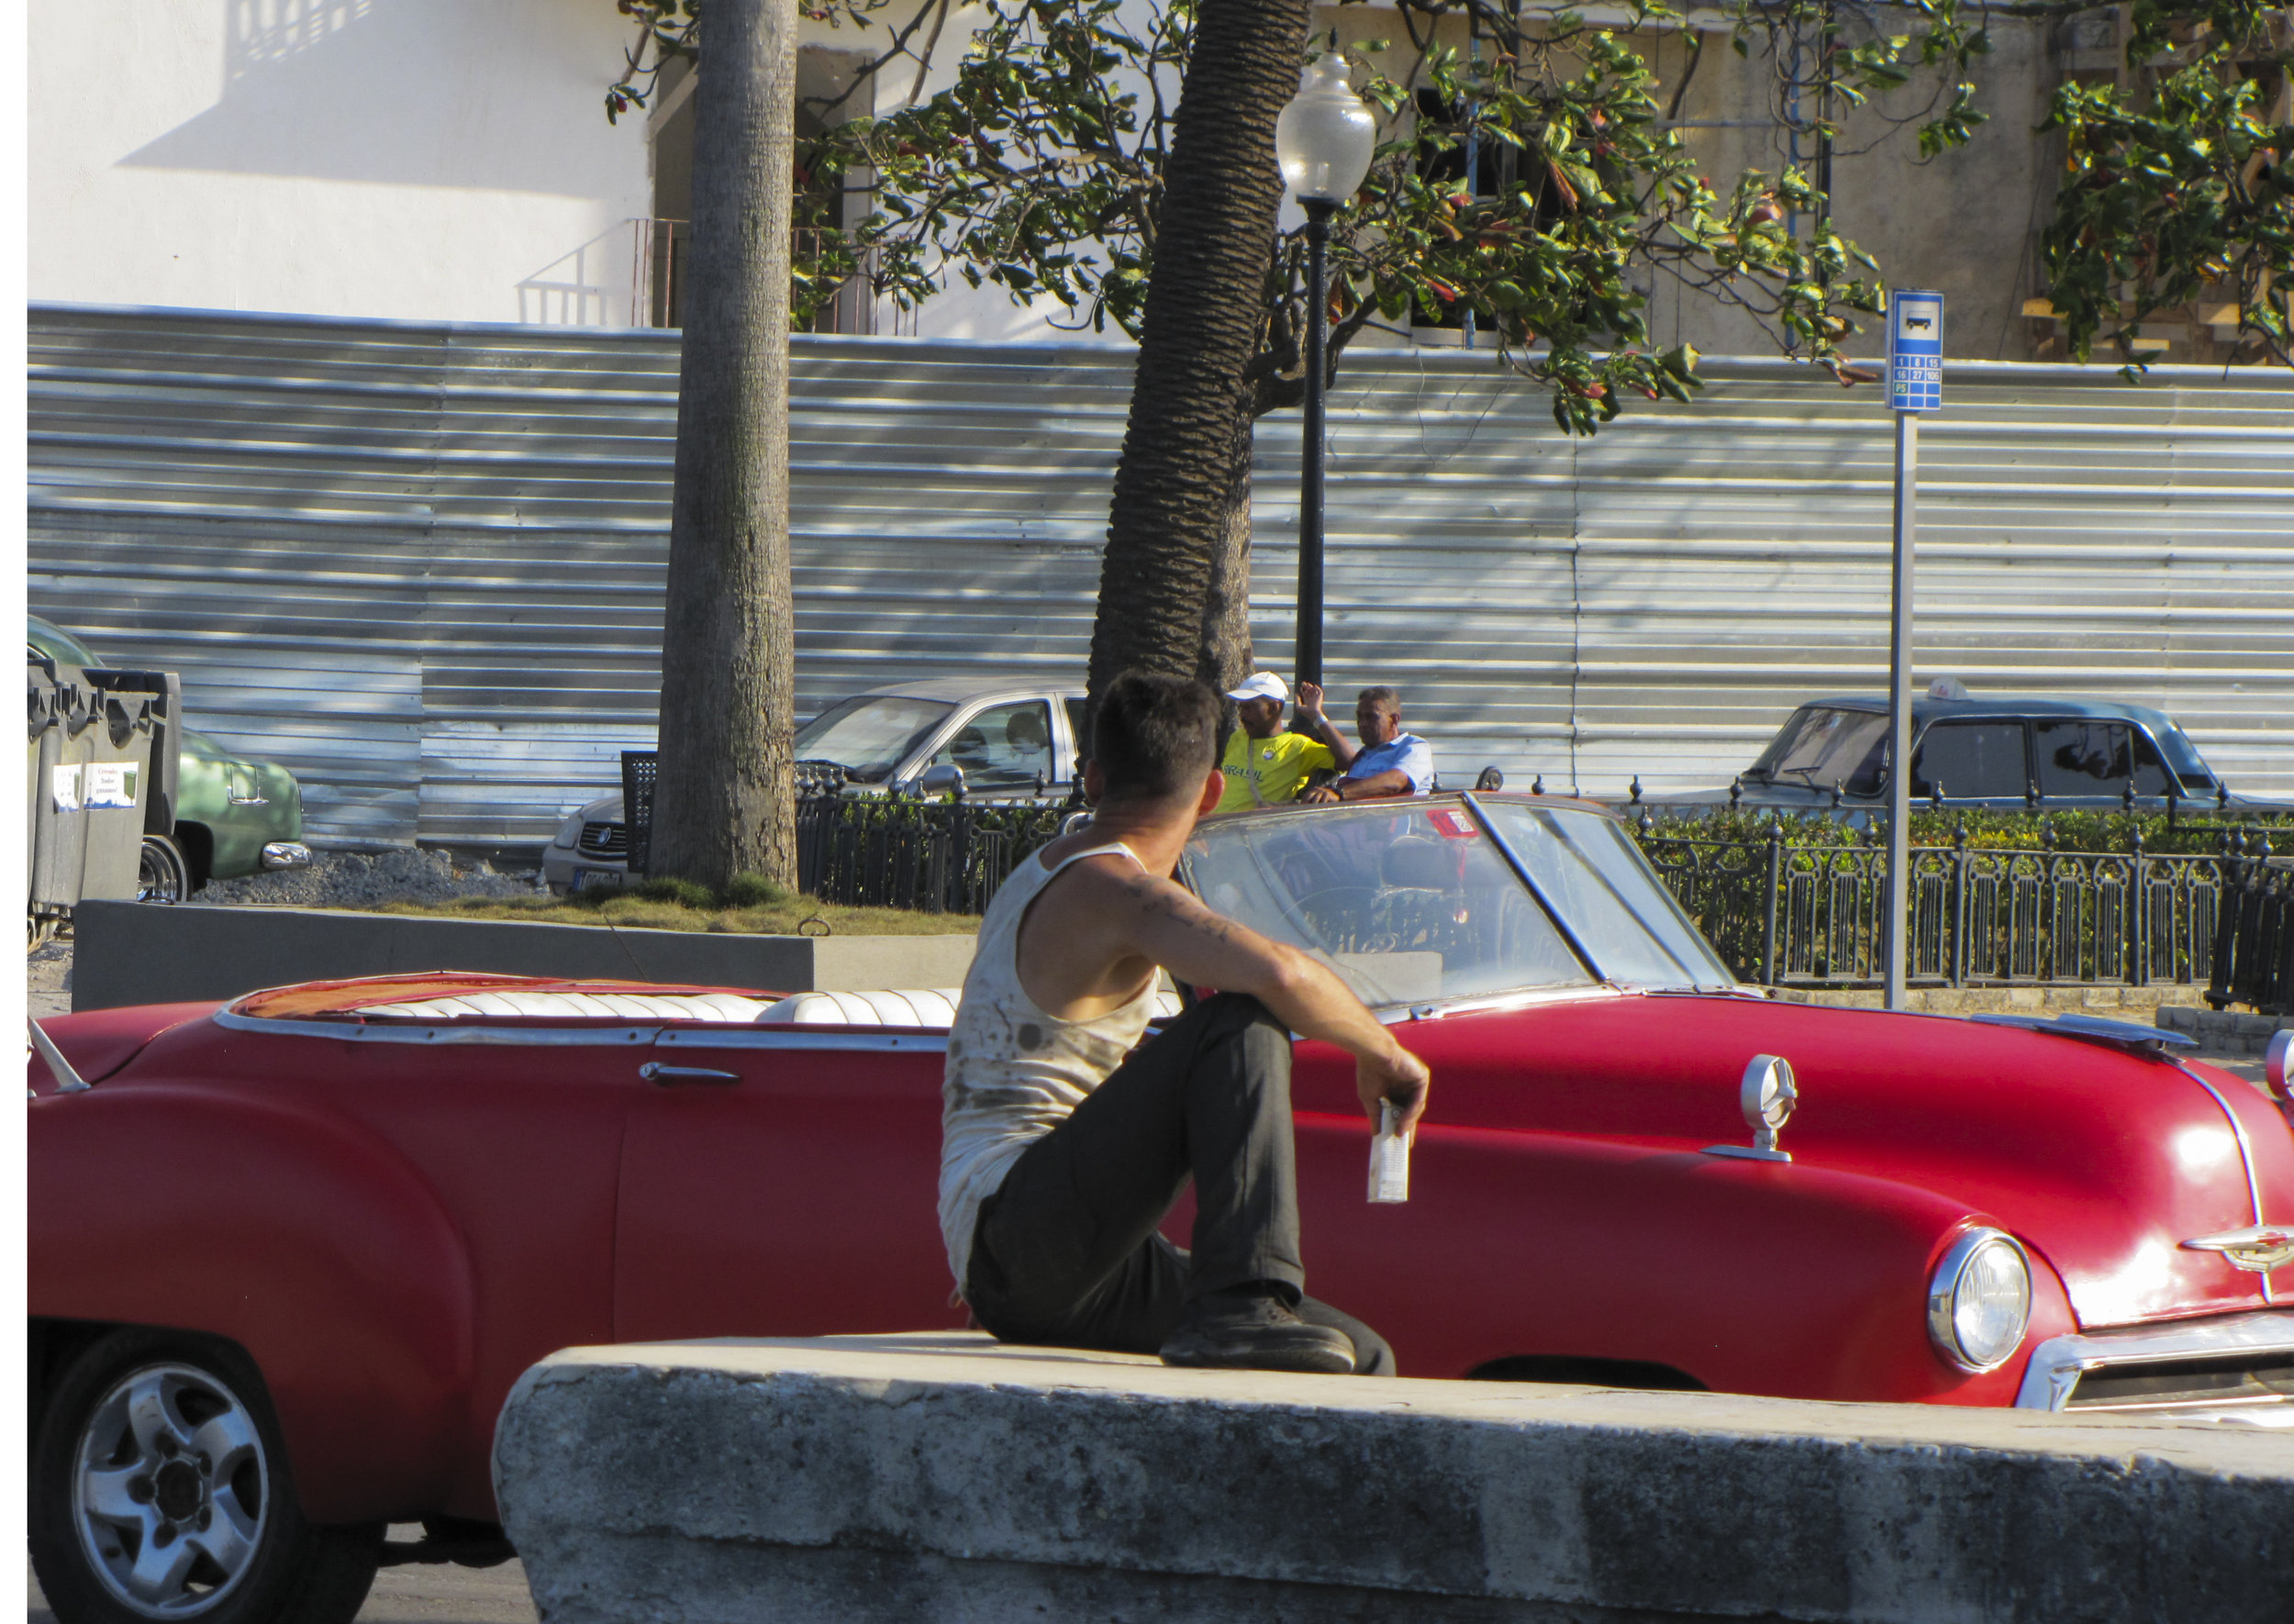 Guy and red car.jpg